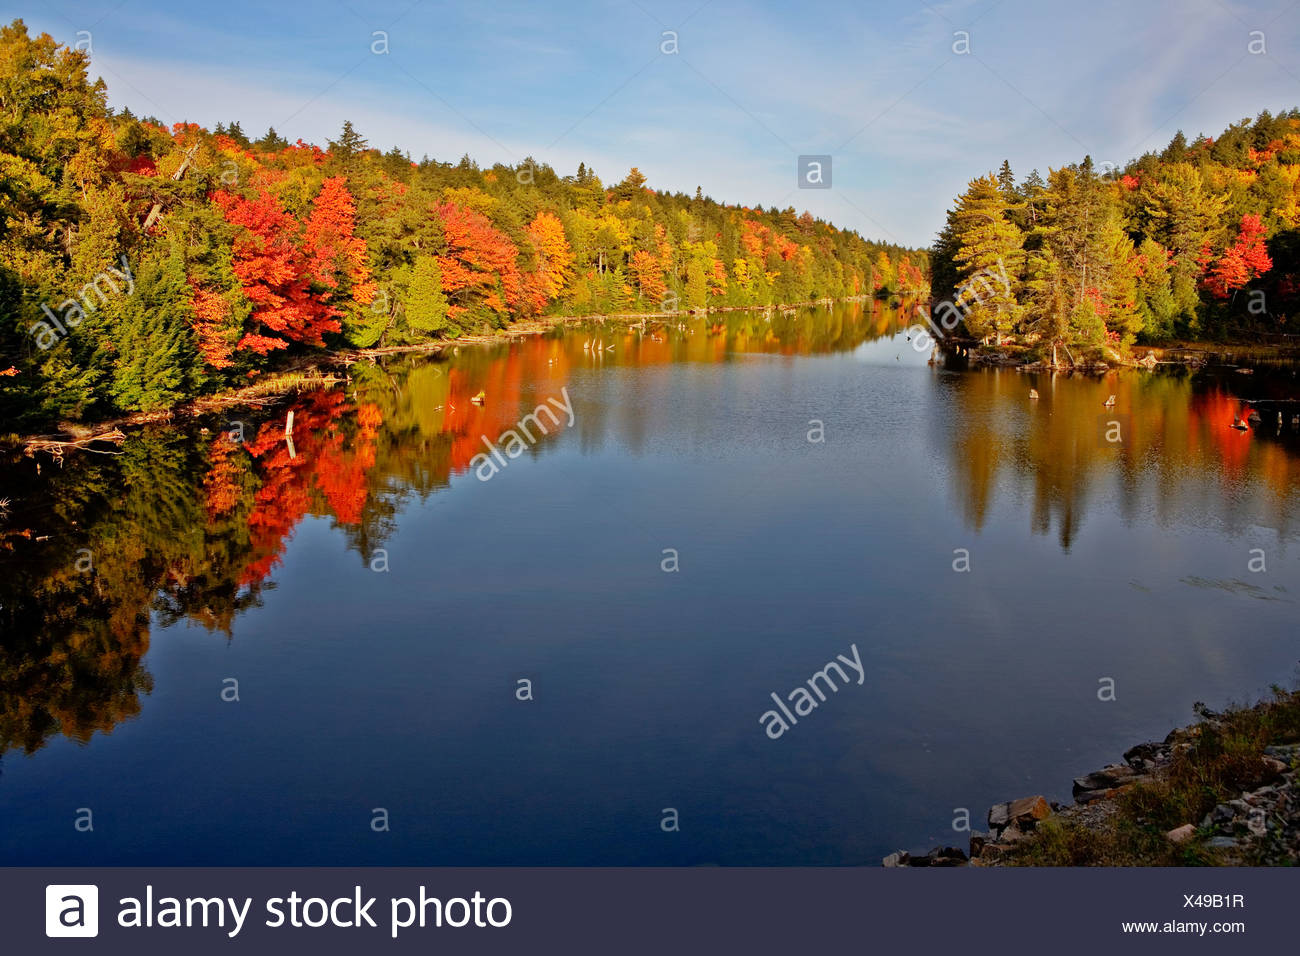 Water reflections in lake in Algonquin Park in fall, Ontario, Canada Stock Photo